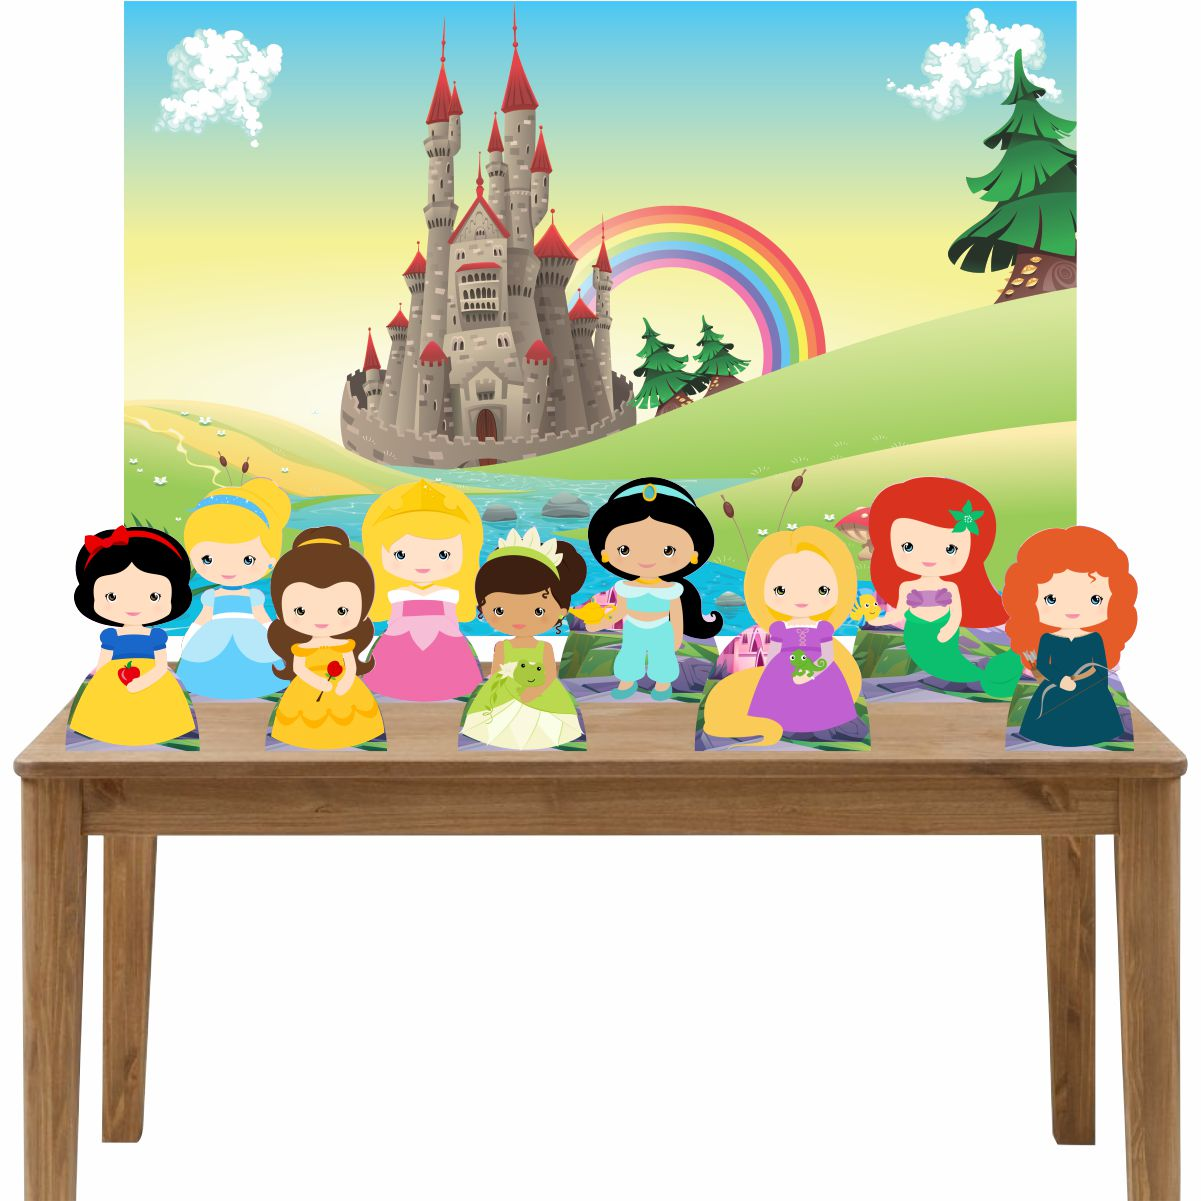 Kit 9 Displays de Mesa e Painel Princesas Cute